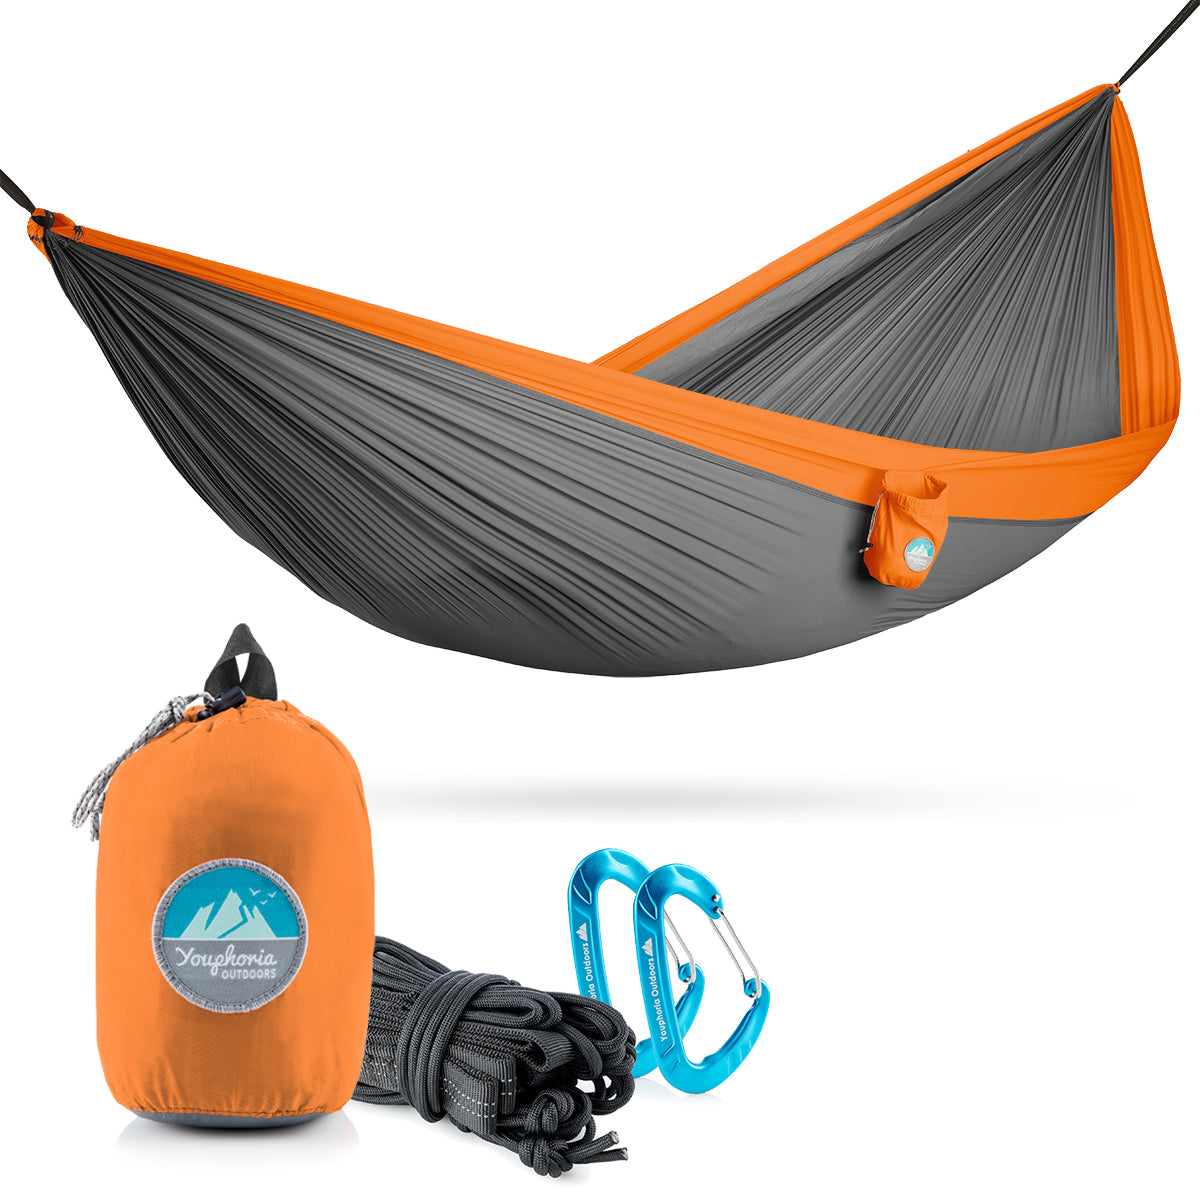 Youphoria Outdoors Portable Camping Ultralight Hammock in Gray/Orange